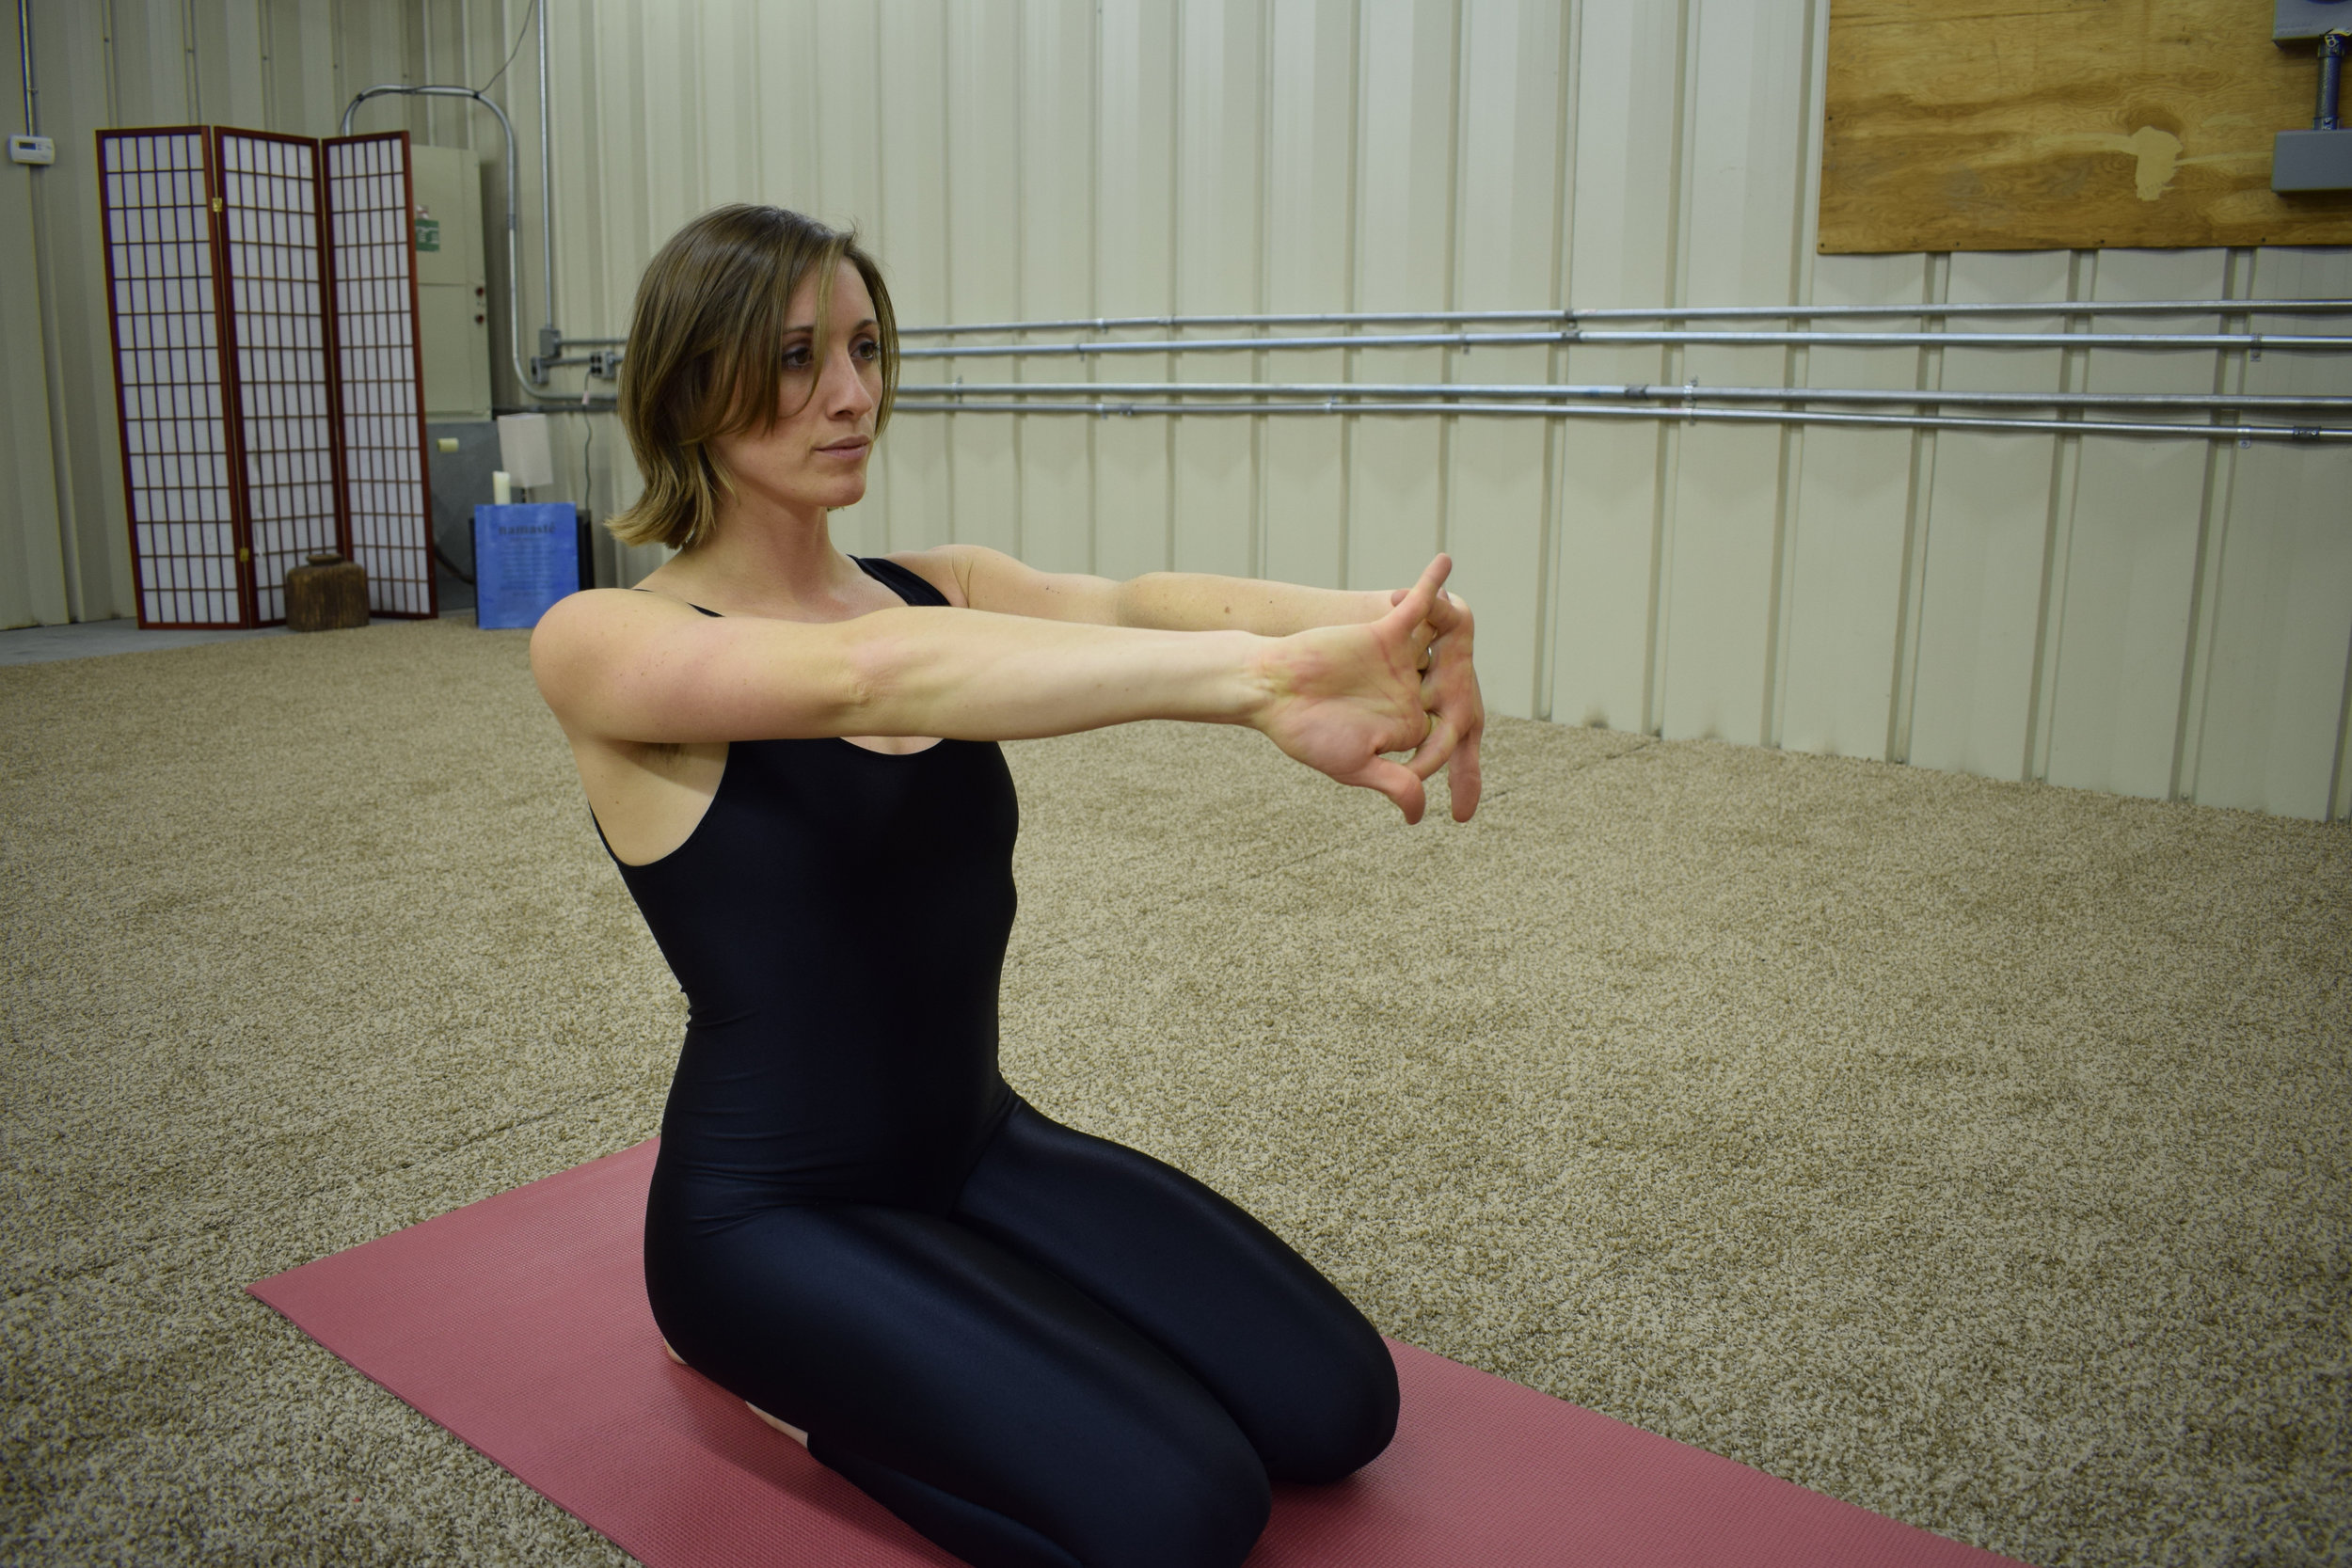 Figure 4: Interlace fingers, lock the shoulders back, and extend through the palms facing outward sending energy to the hands and wrists. Gaze softly in front of you.